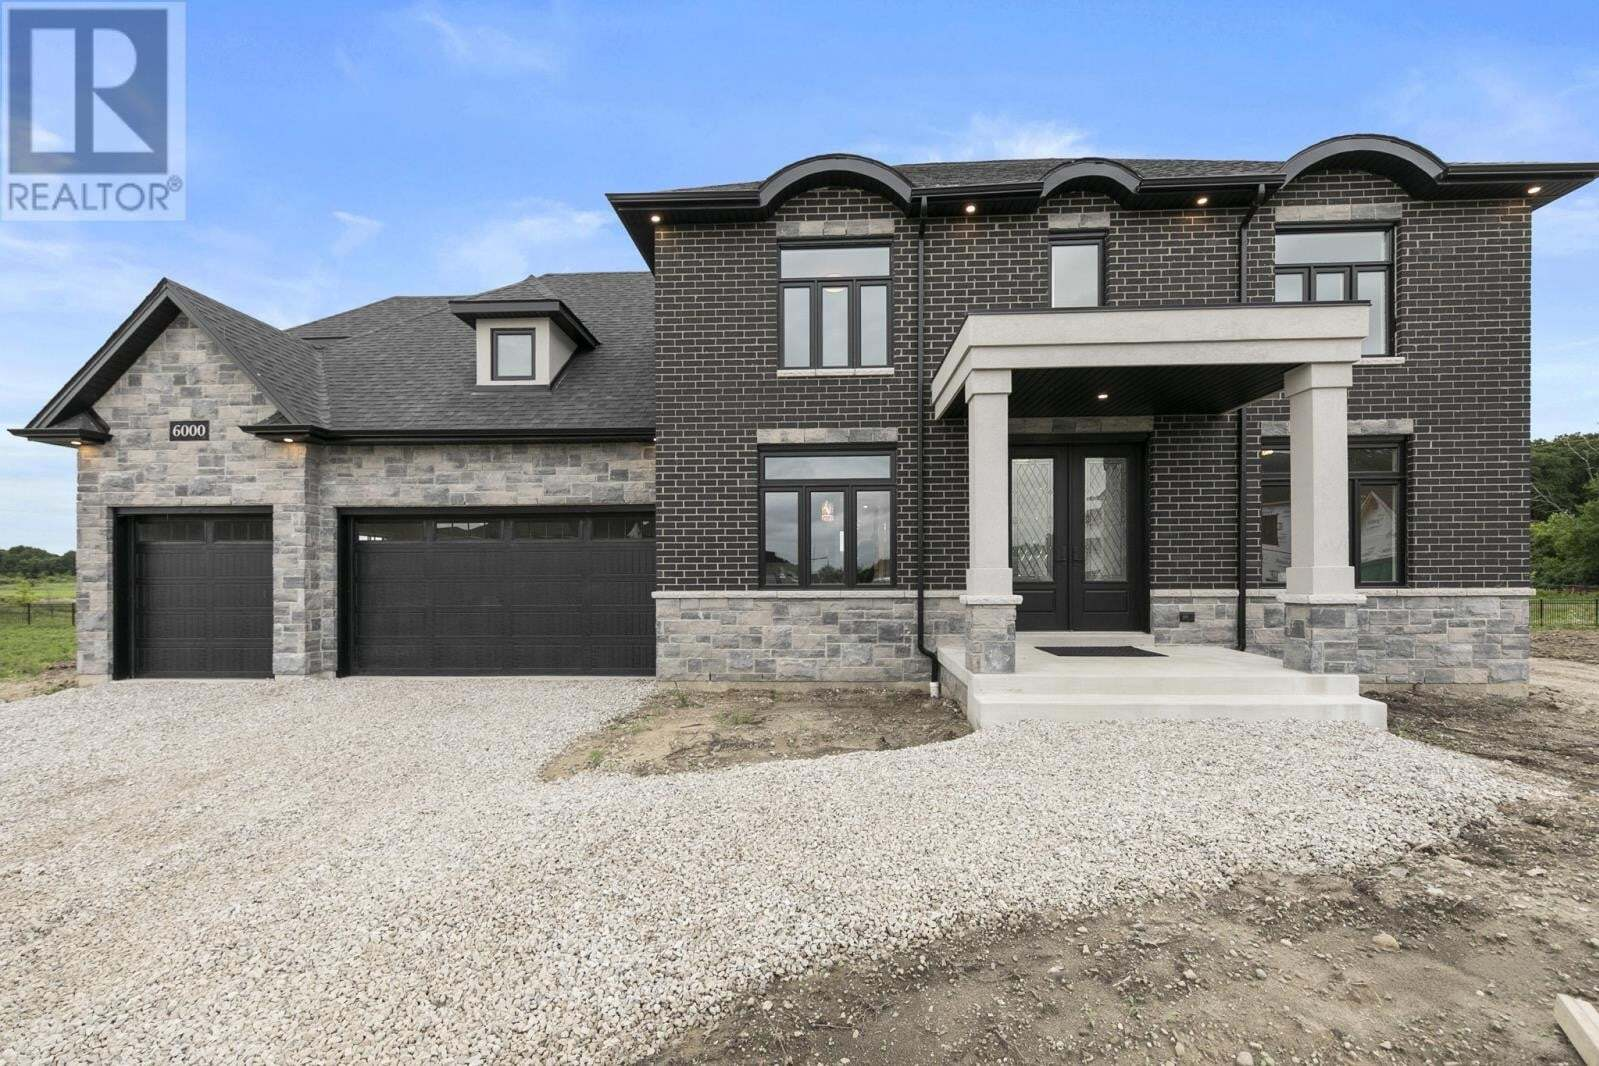 House for sale at 6000 Silver Maple  Lasalle Ontario - MLS: 20008950